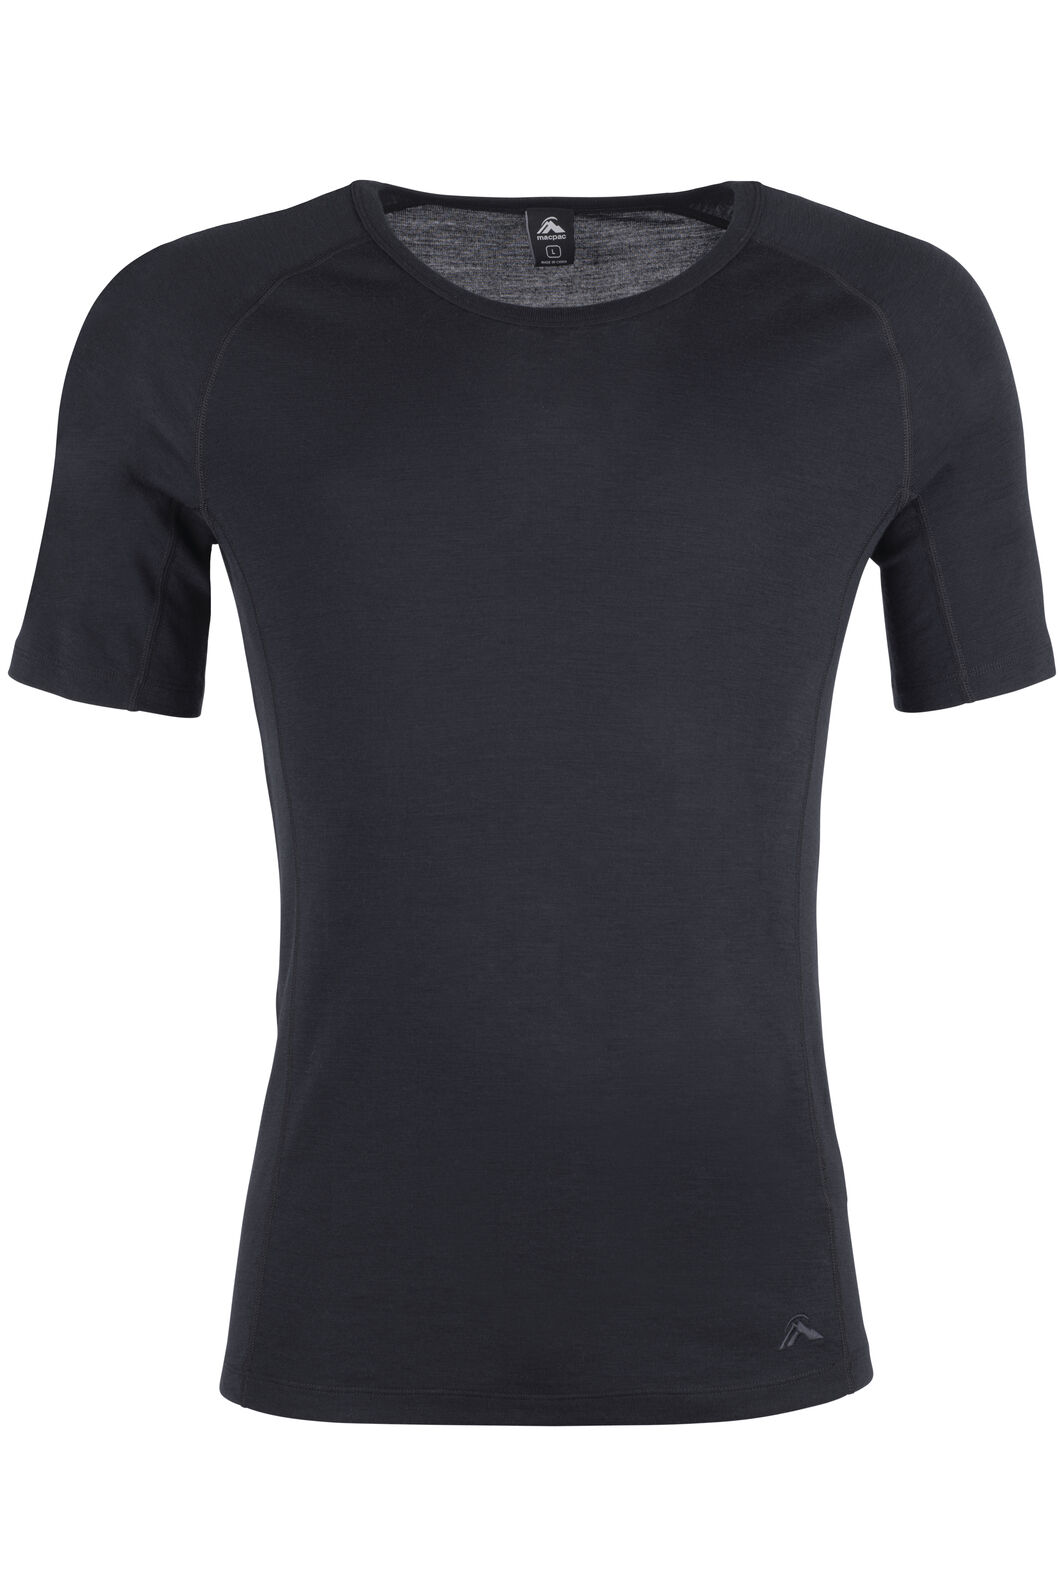 220 Merino Short Sleeve Top - Men's, Black, hi-res